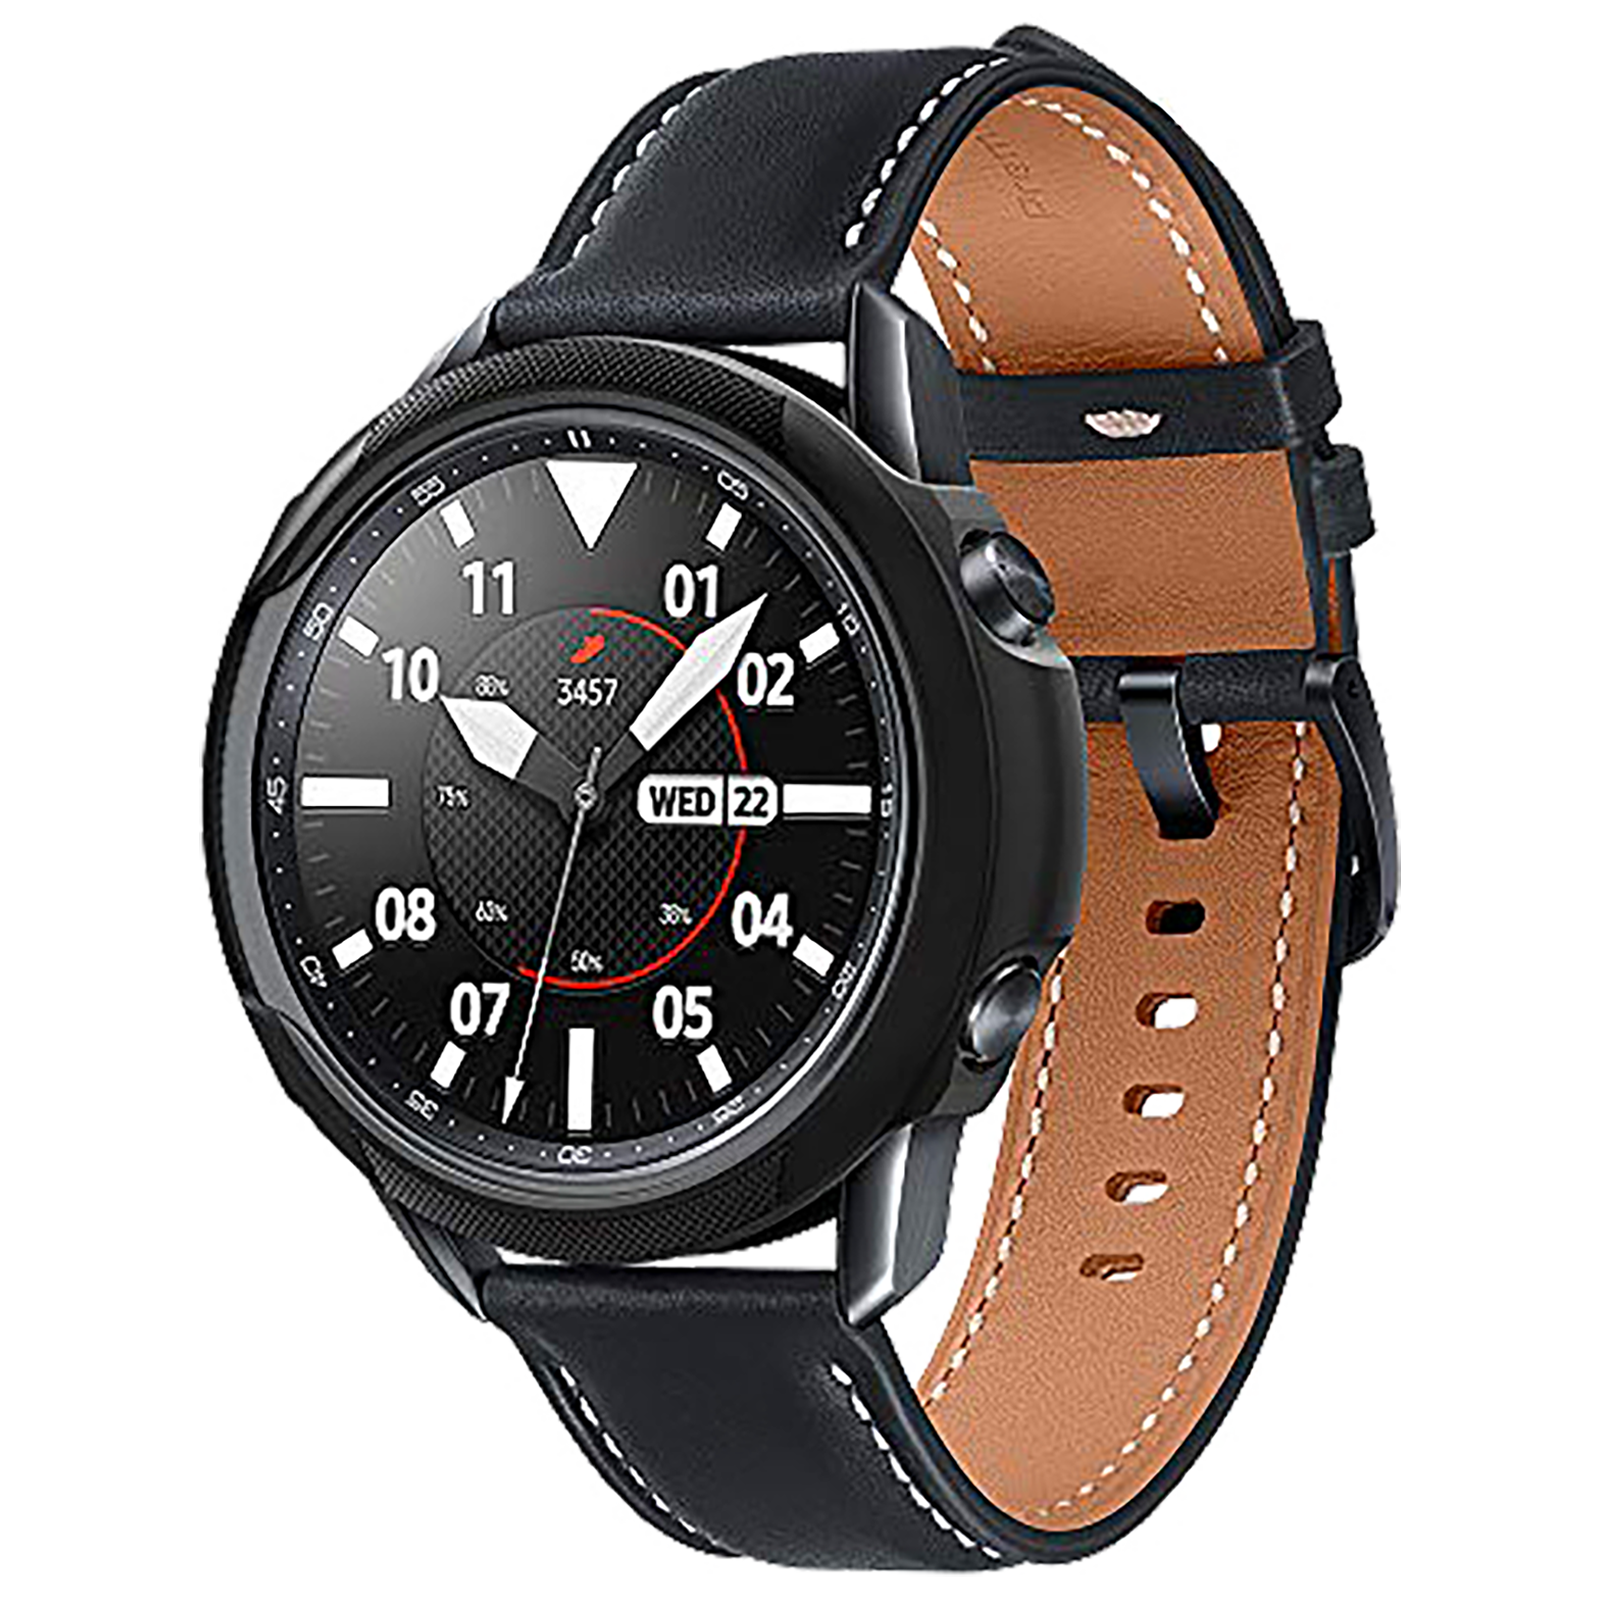 Spigen Liquid Air Case For Samsung Galaxy Watch (45mm) (Raised Edges For Added Protection, ACS01560, Matte Black)_1